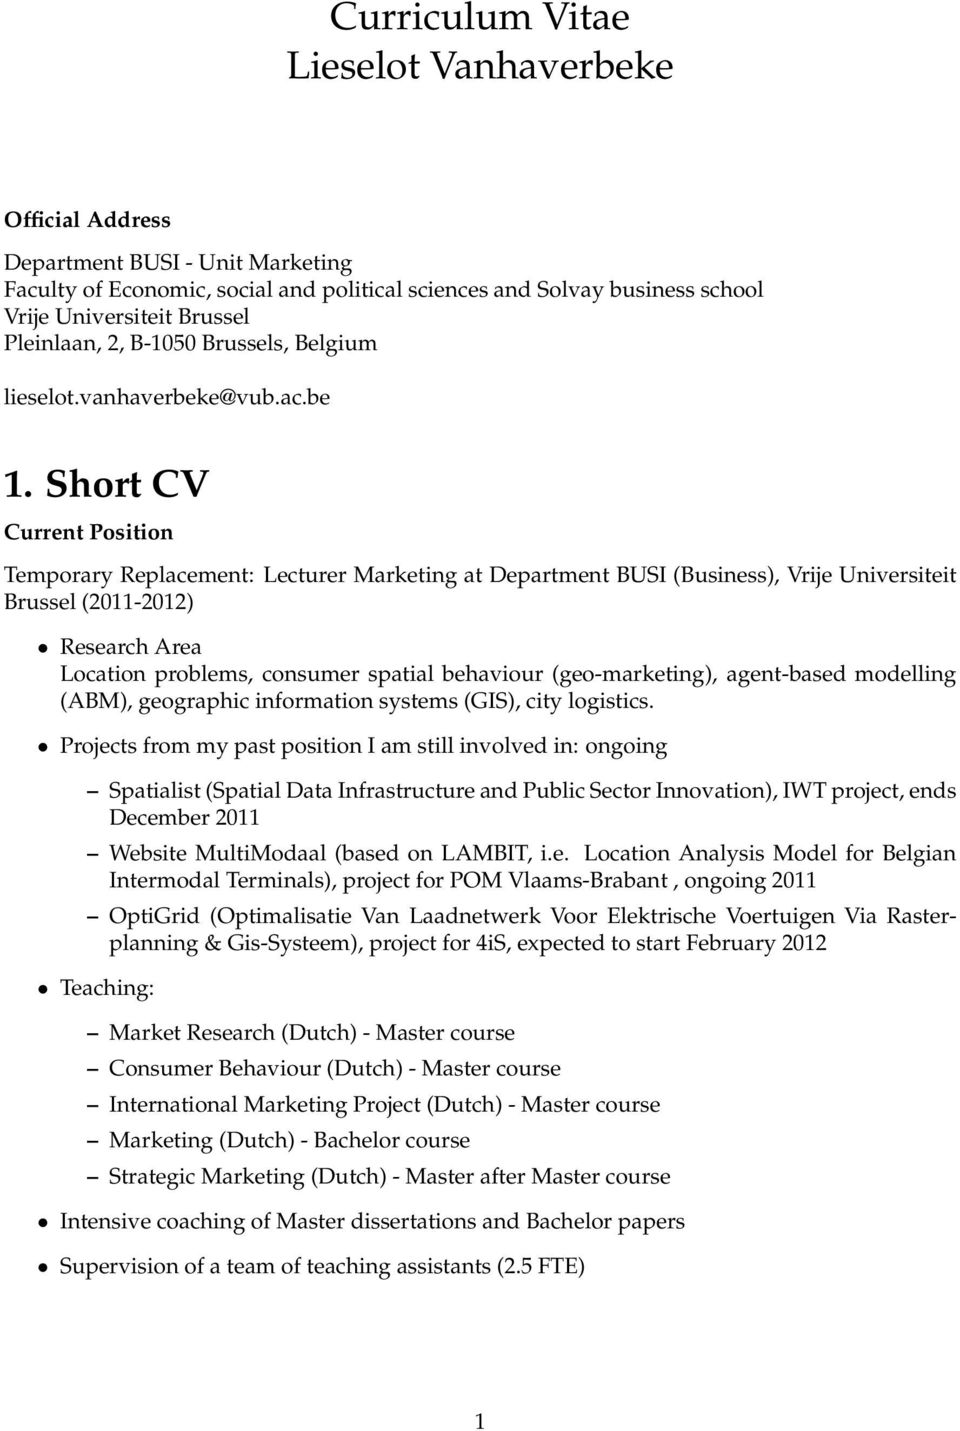 Short CV Current Position Temporary Replacement: Lecturer Marketing at Department BUSI (Business), Vrije Universiteit Brussel (2011-2012) Research Area Location problems, consumer spatial behaviour